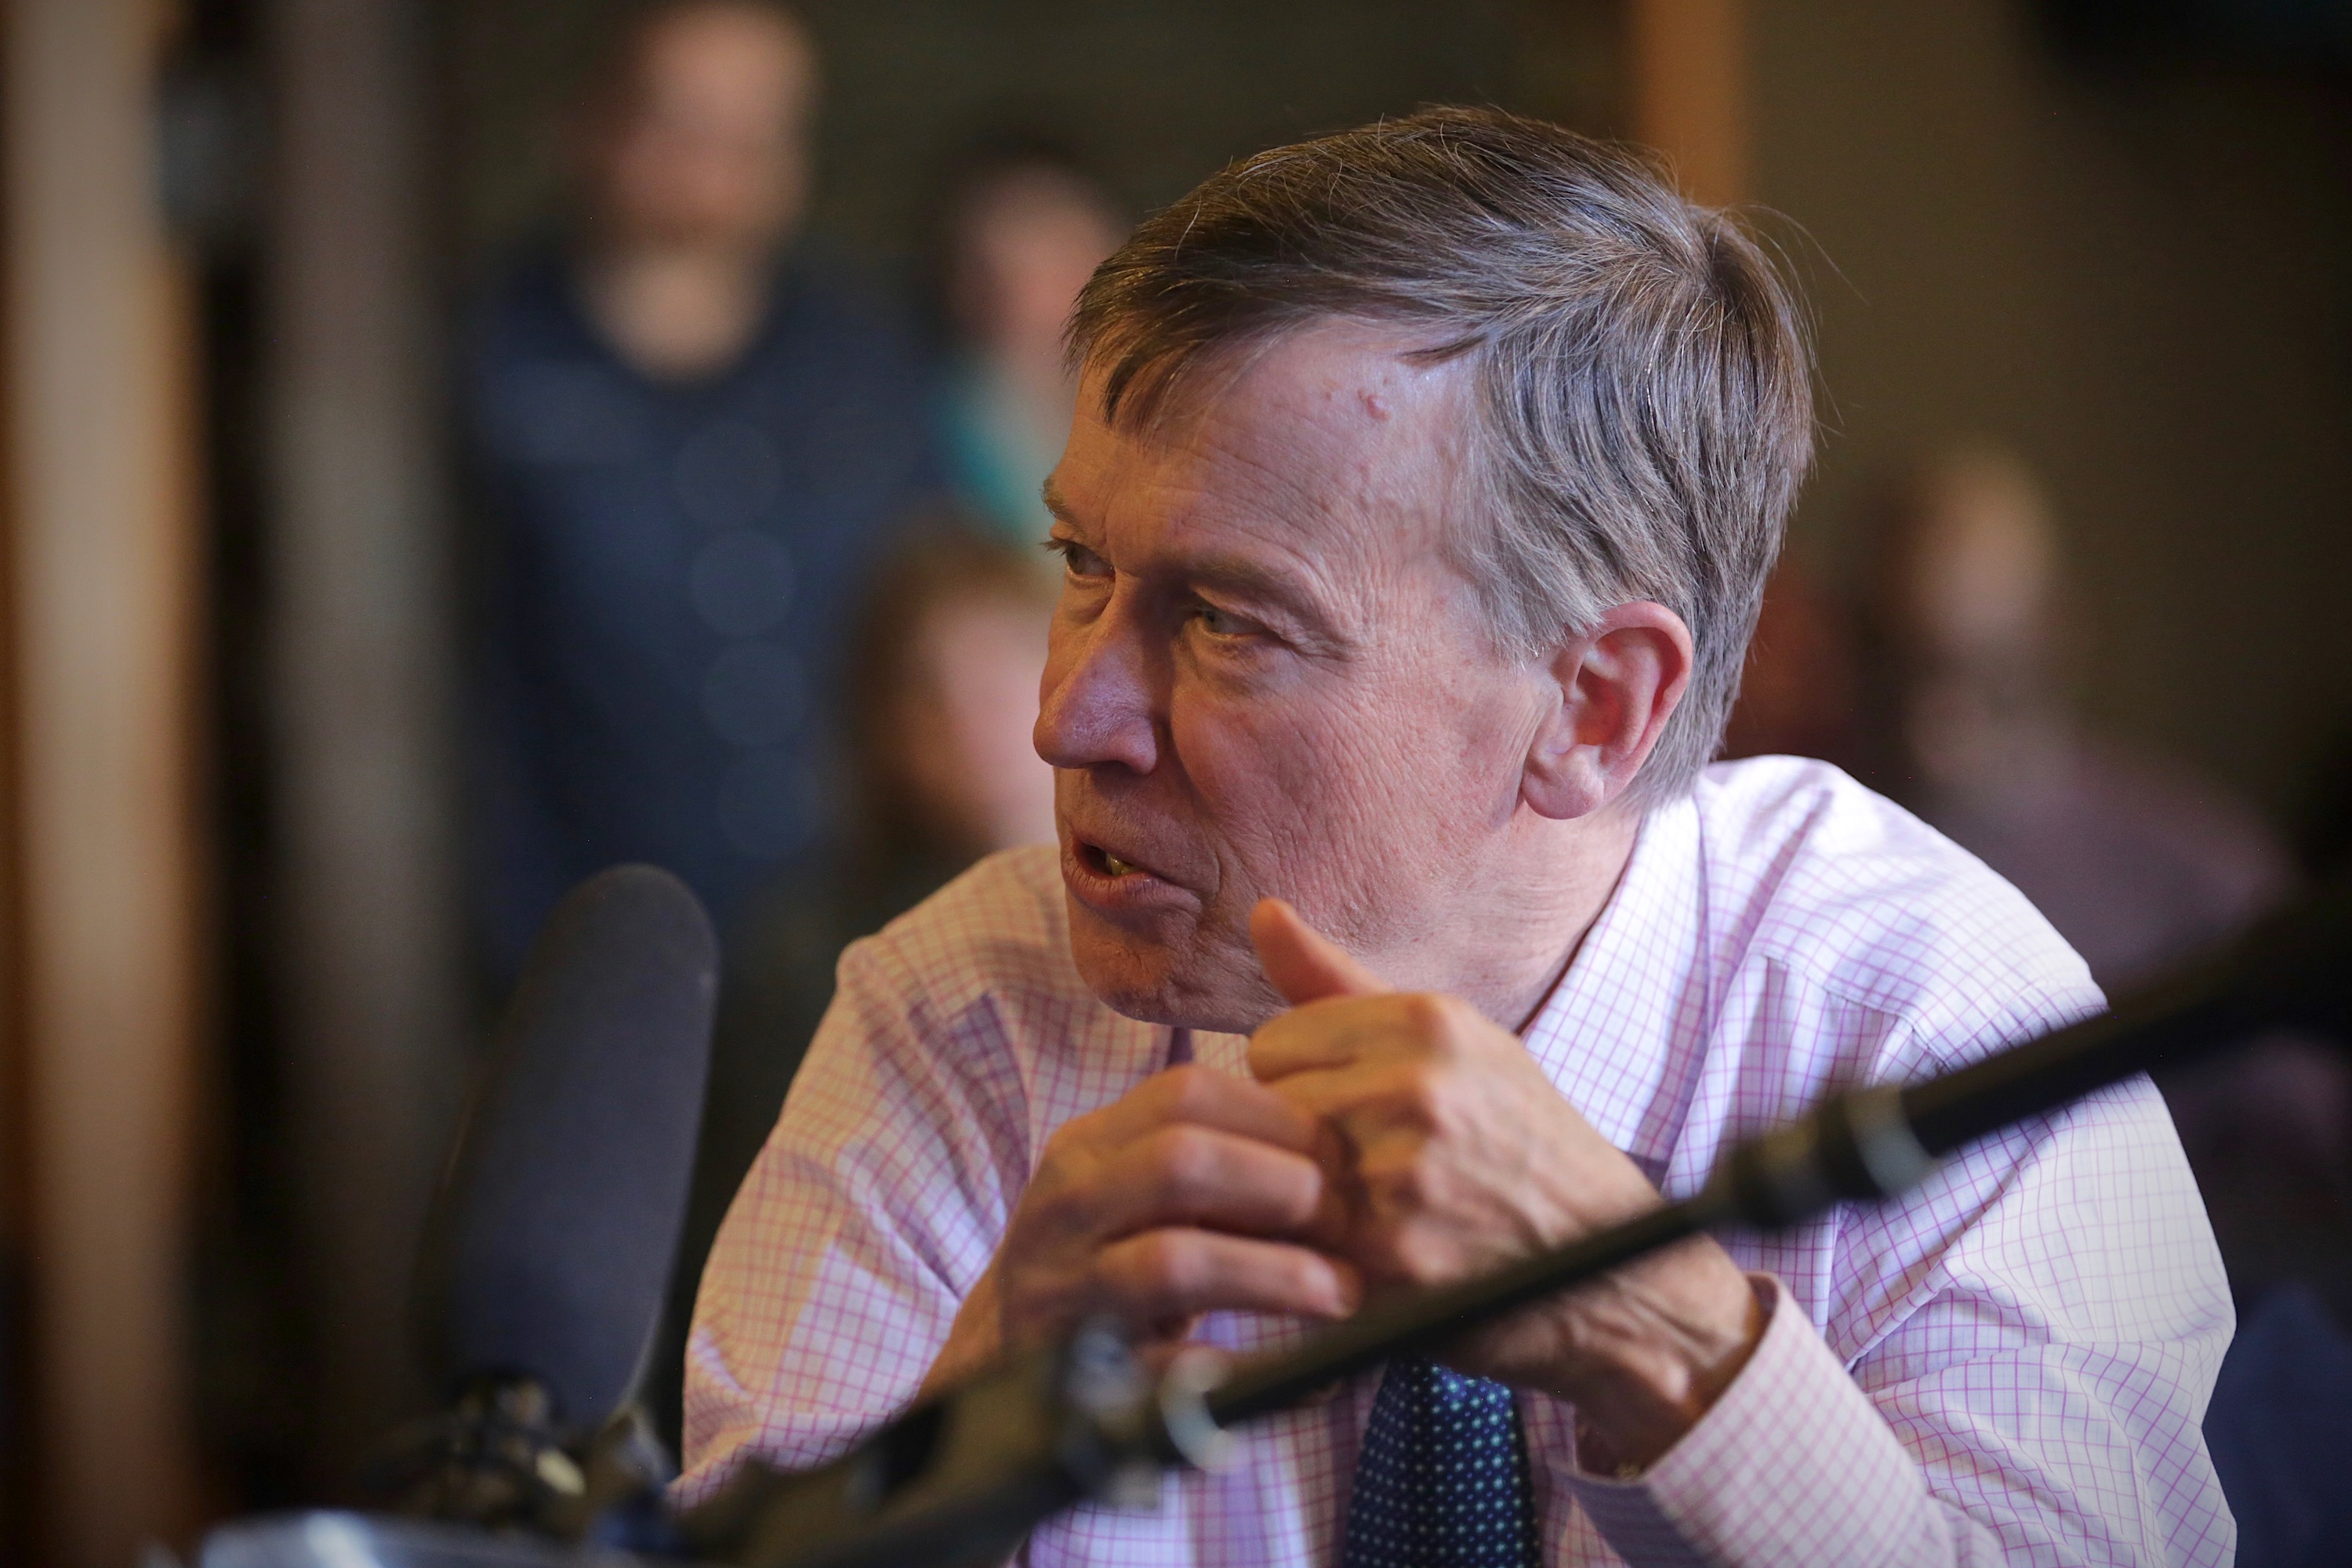 Photo: Hickenlooper Wynkoop 2 HV 20190103